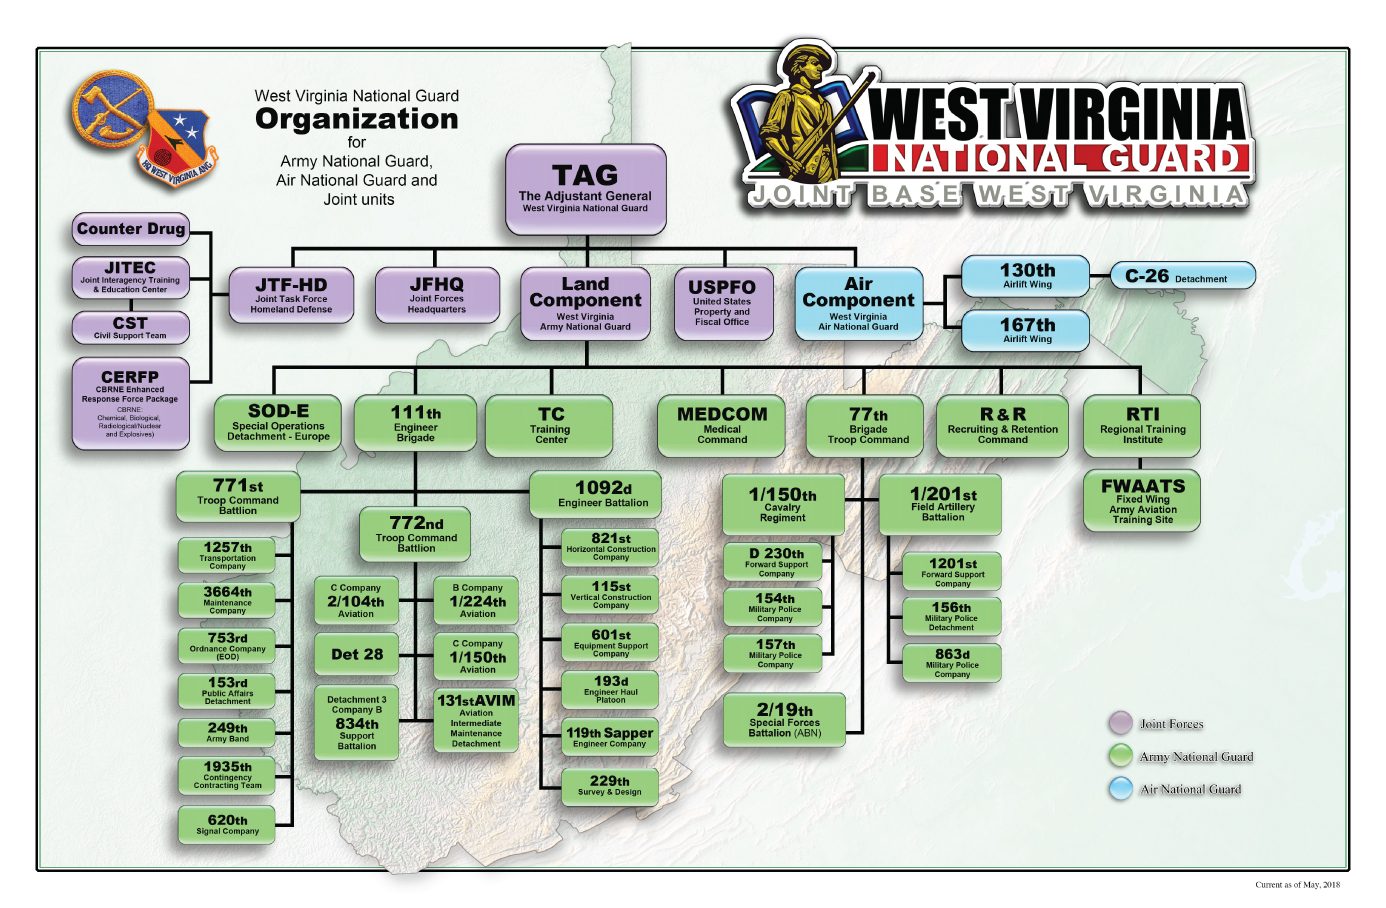 West Virginia National Guard Units